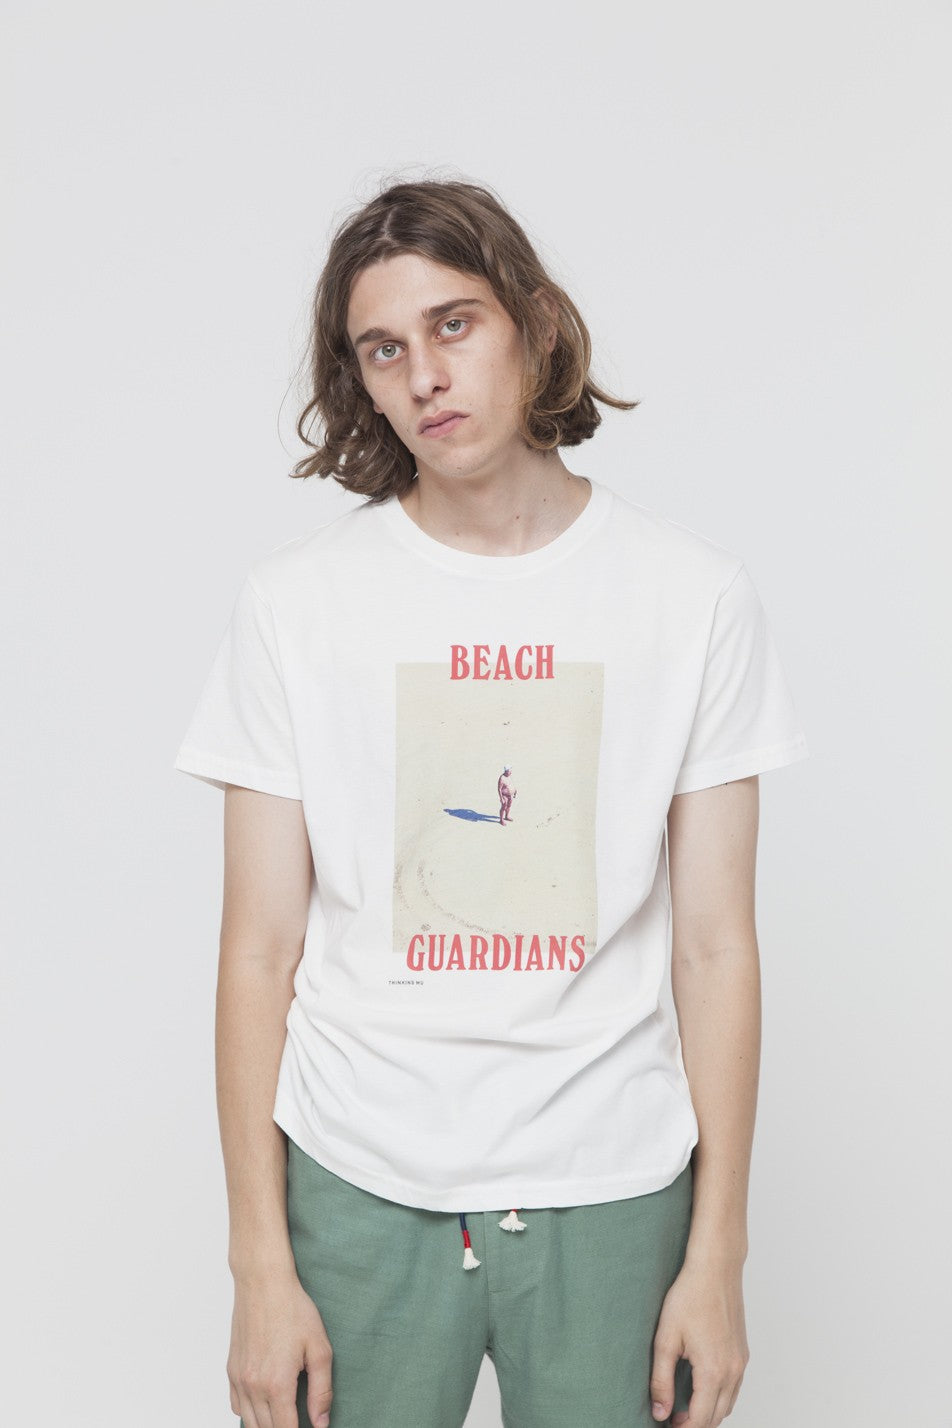 BEACH GUARDIANS T-SHIRT - just-brazil